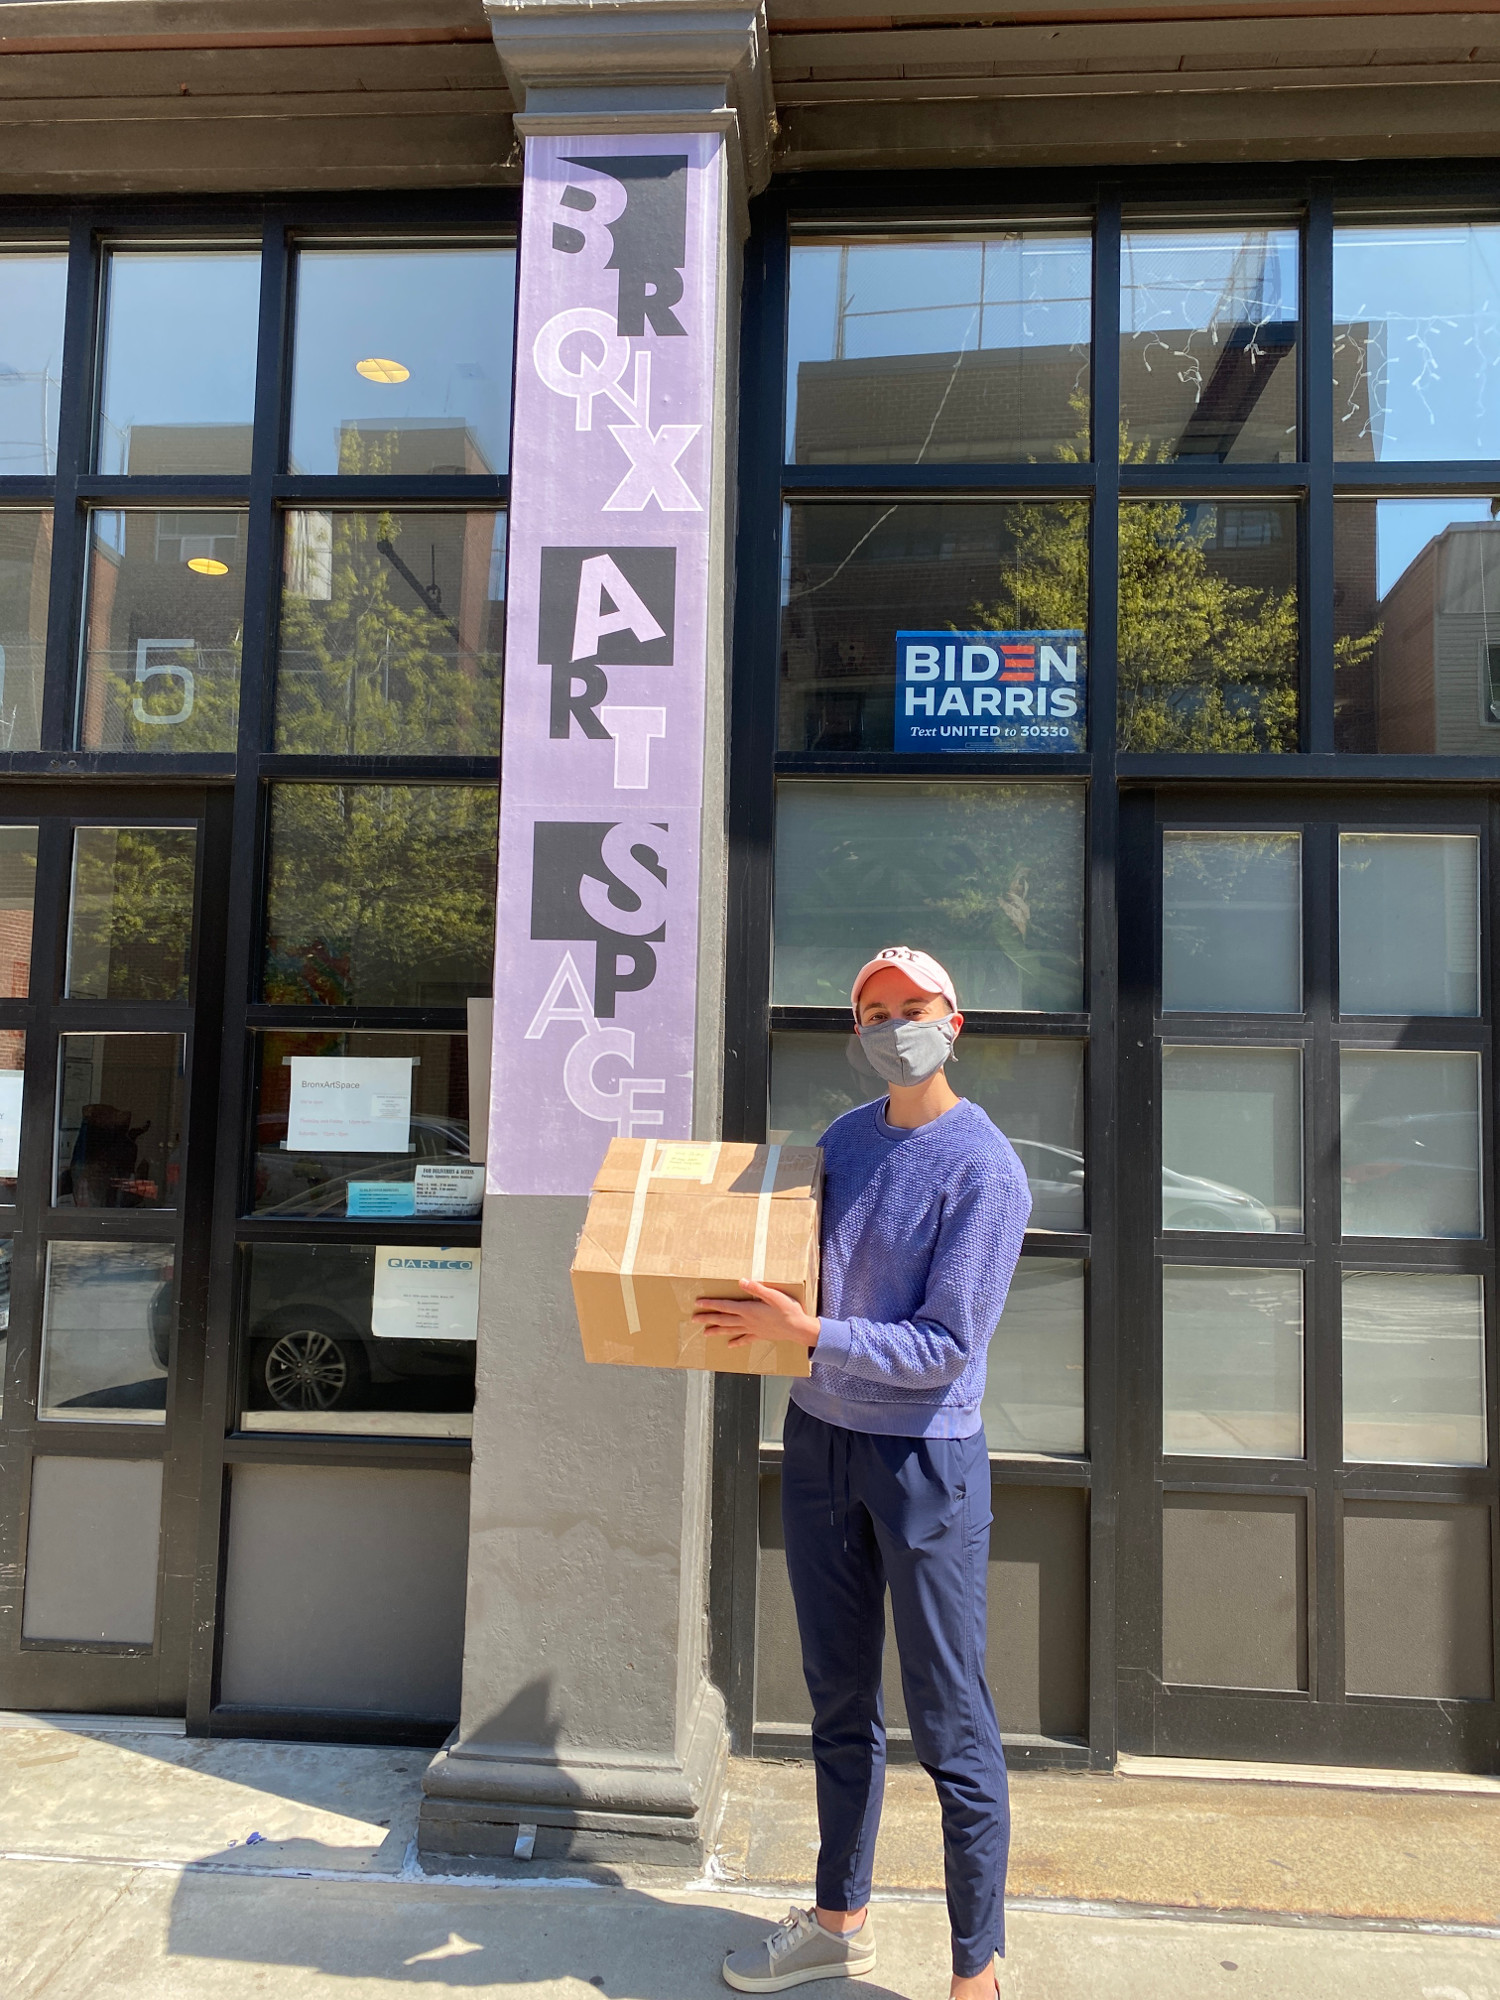 Soul Boxes made by high school art students are delivered to The Bronx Art Space by their teacher